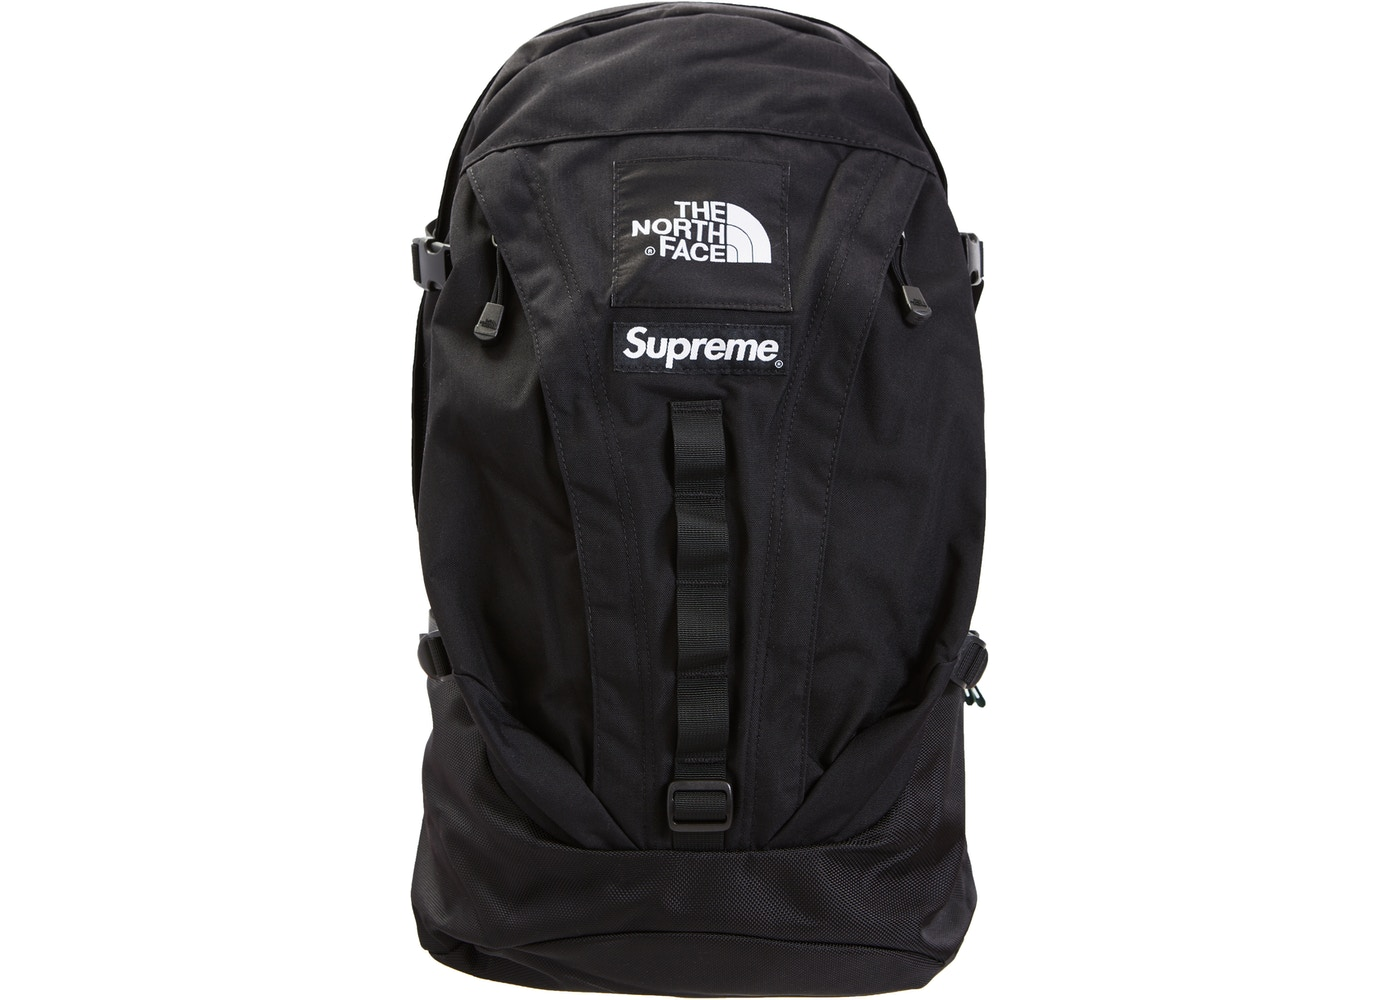 8b34e9ce1 Supreme The North Face Expedition Backpack Black